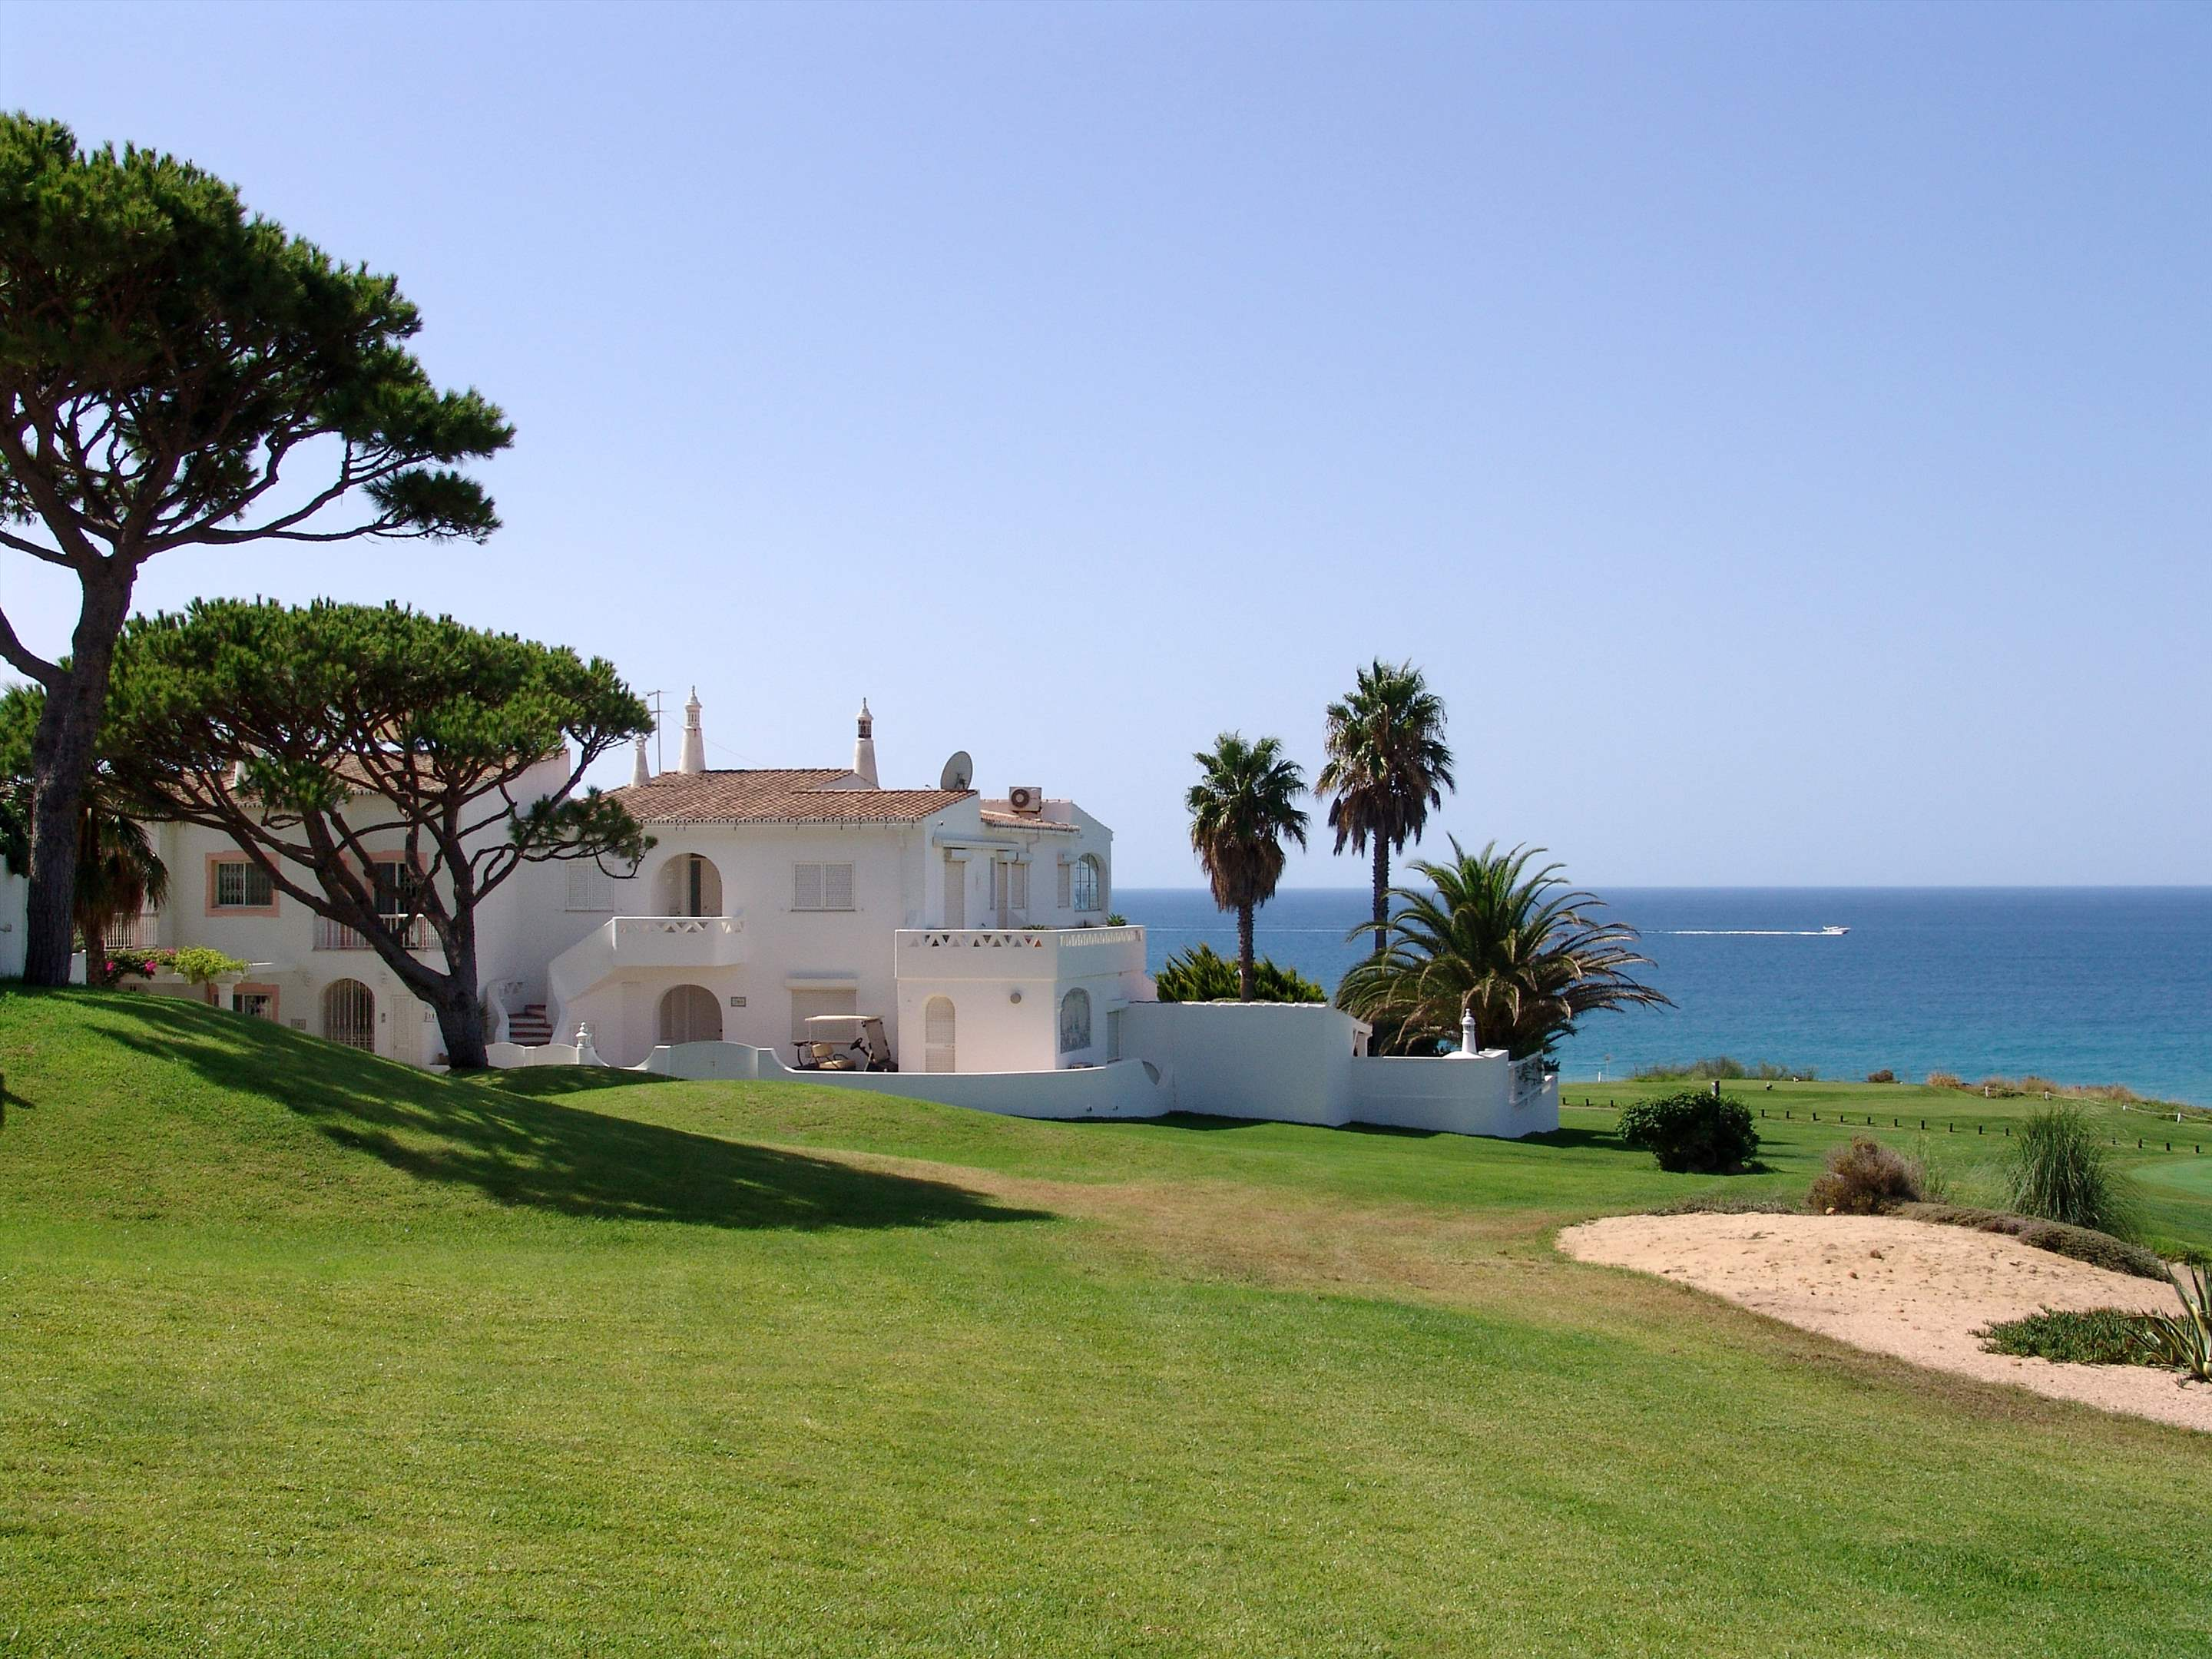 Villas Louisa, 5 bedroom, 5 bedroom villa in Vale do Lobo, Algarve Photo #26